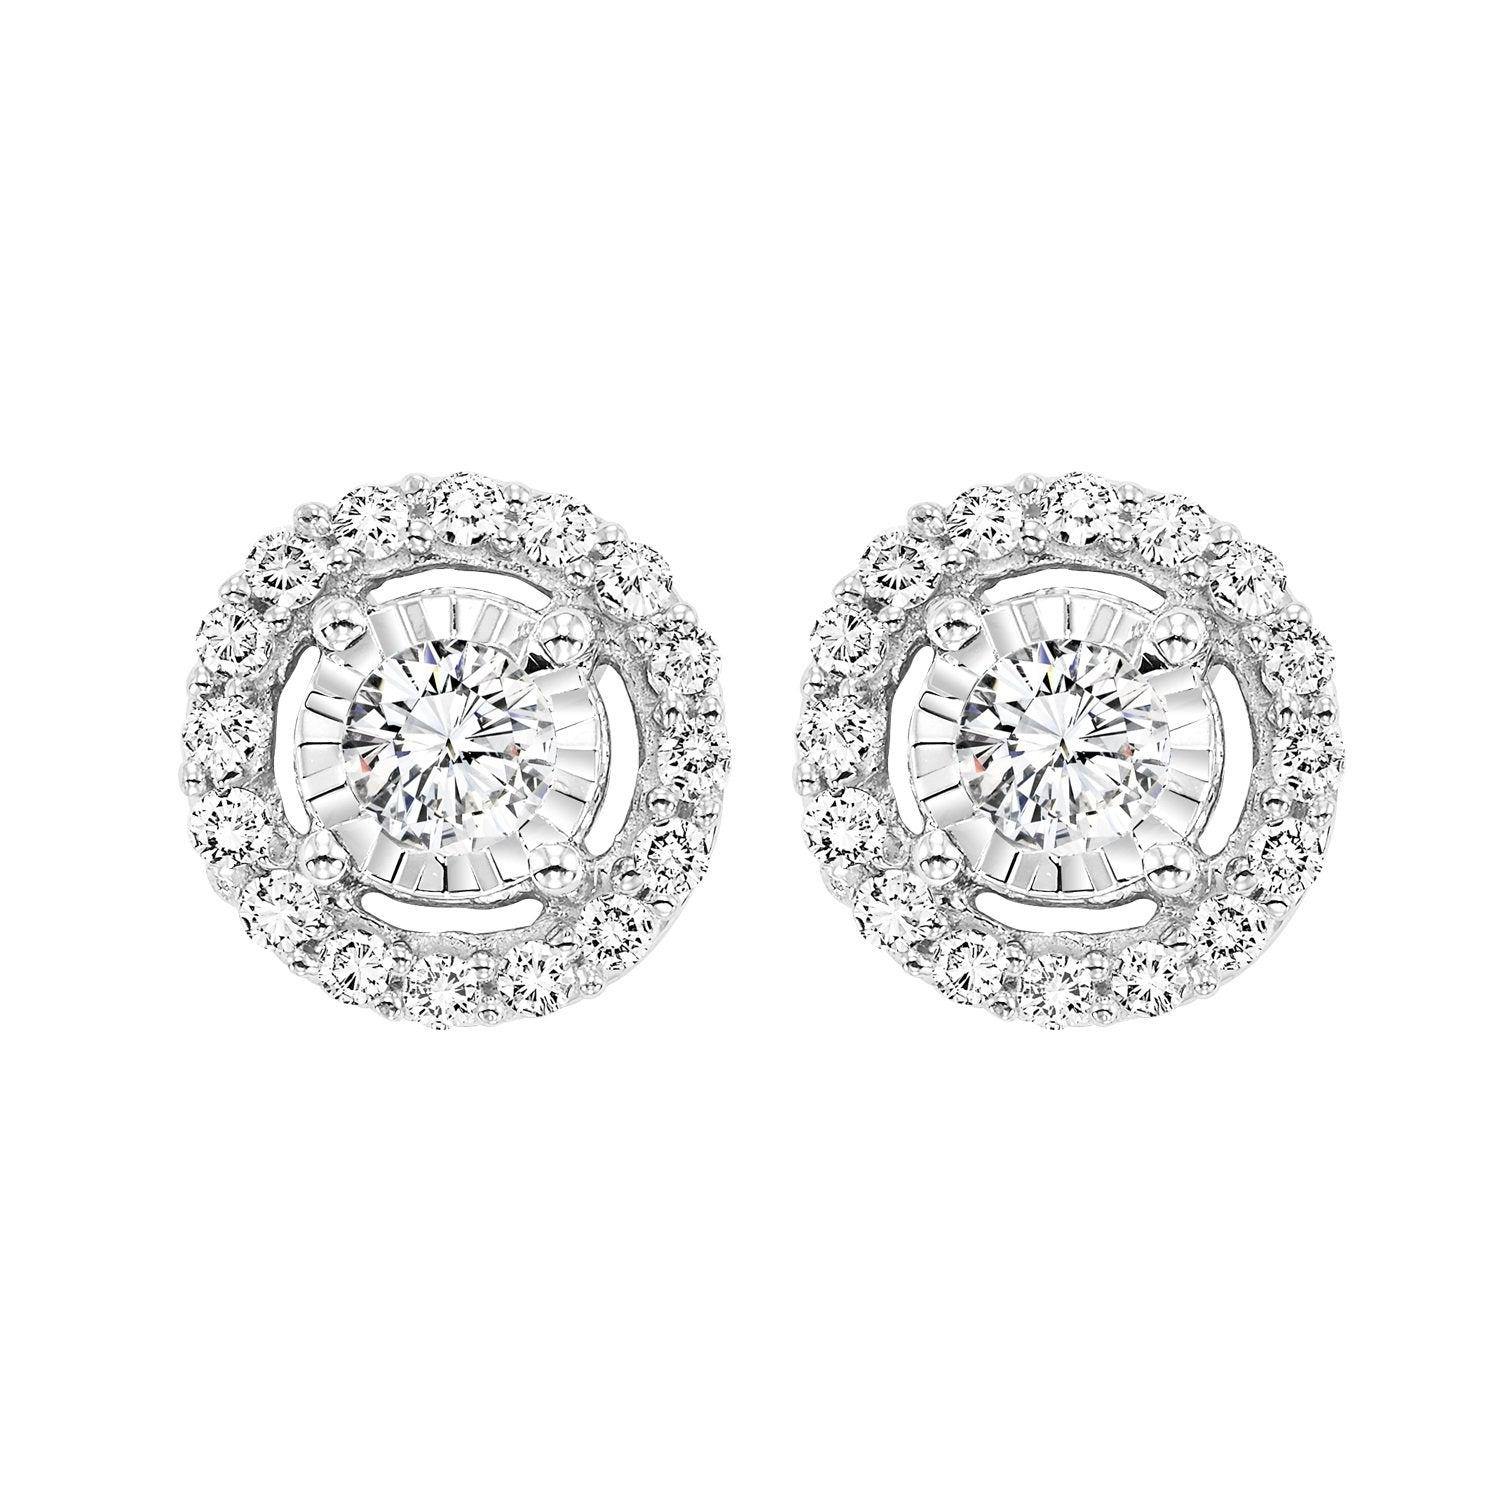 14K White Gold Diamond Earrings 1 ct